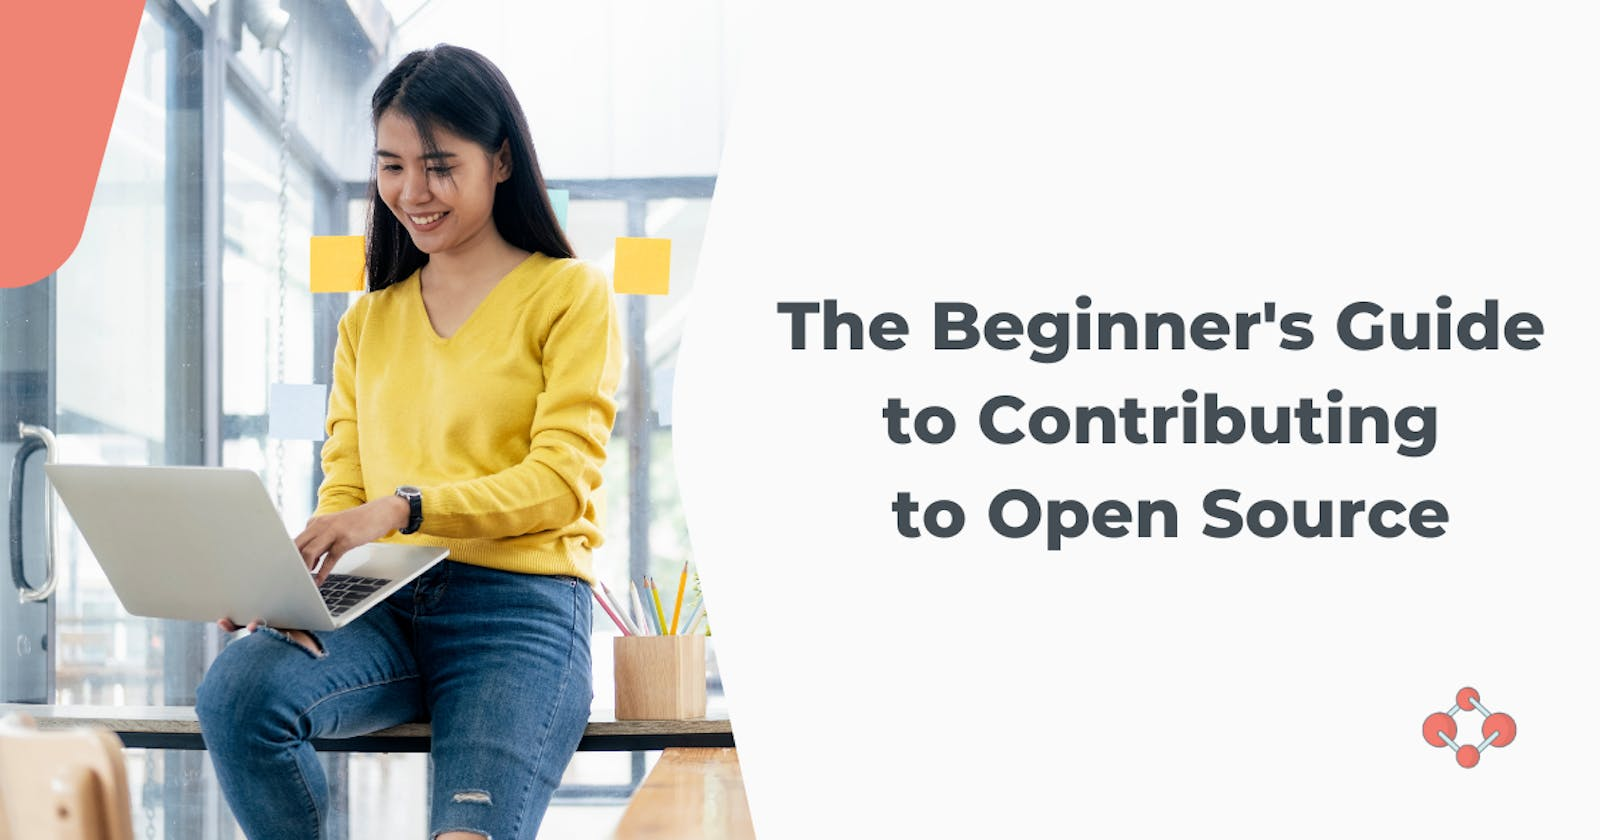 The Beginner's Guide to Contributing to Open Source